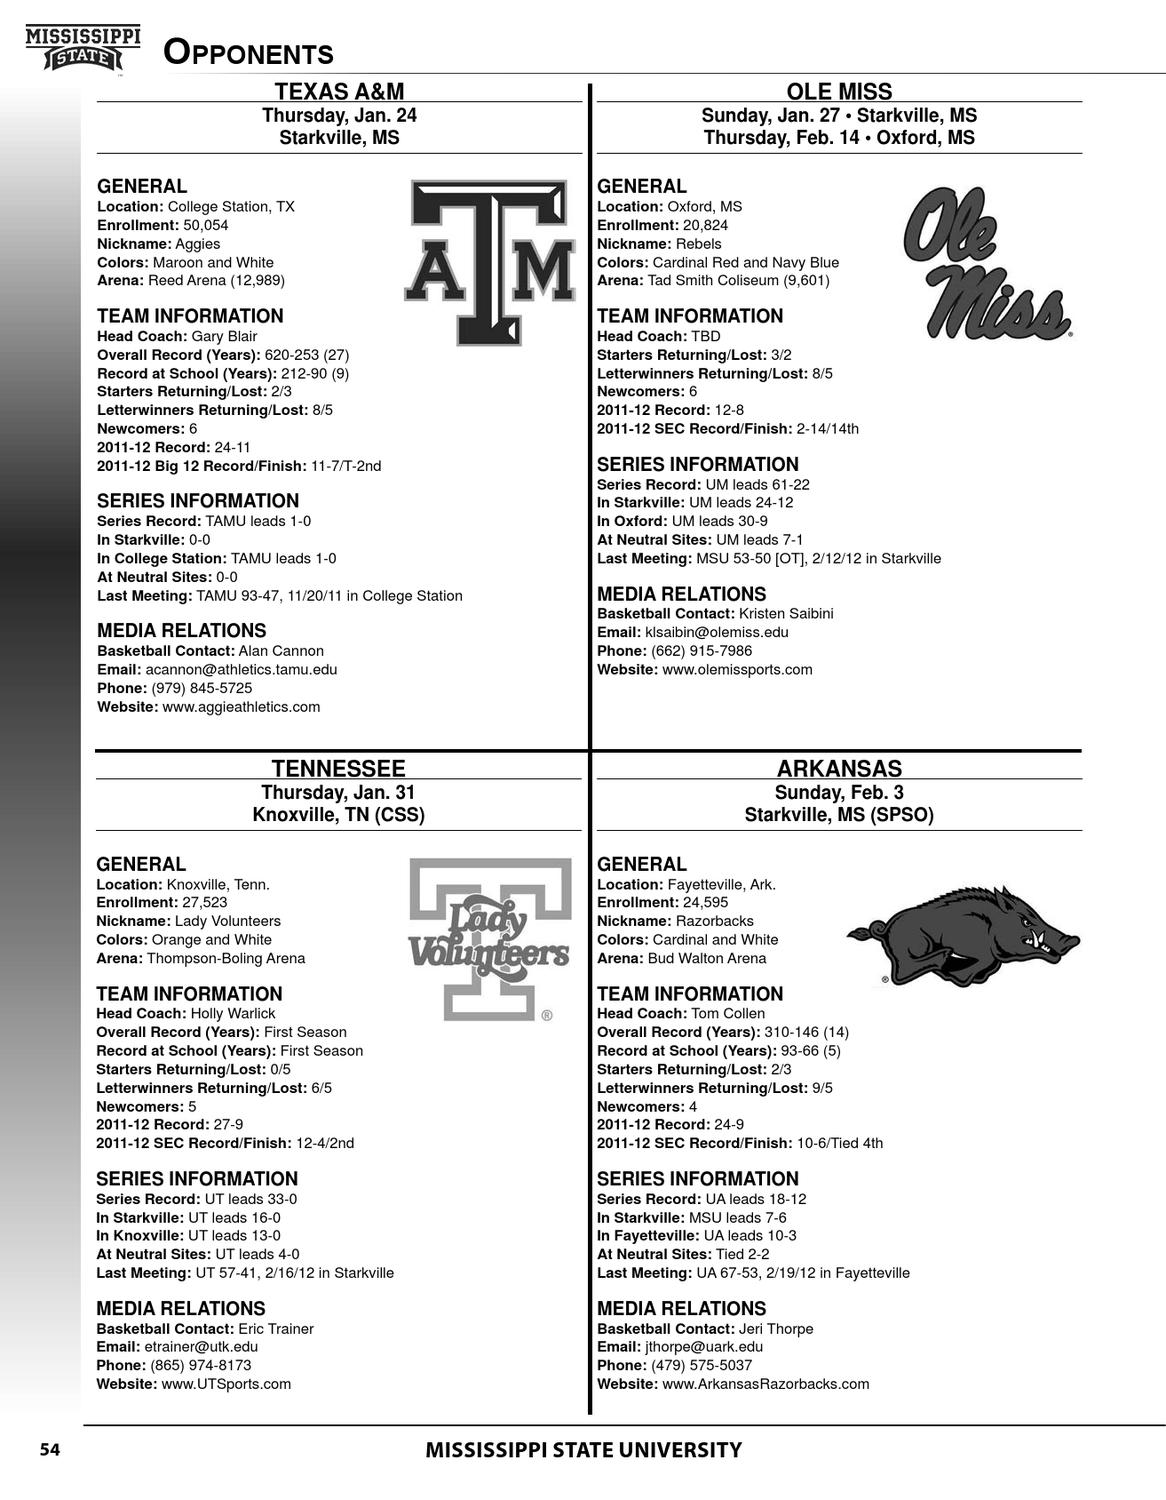 2012-13 Mississippi State Women's Basketball Media Guide by